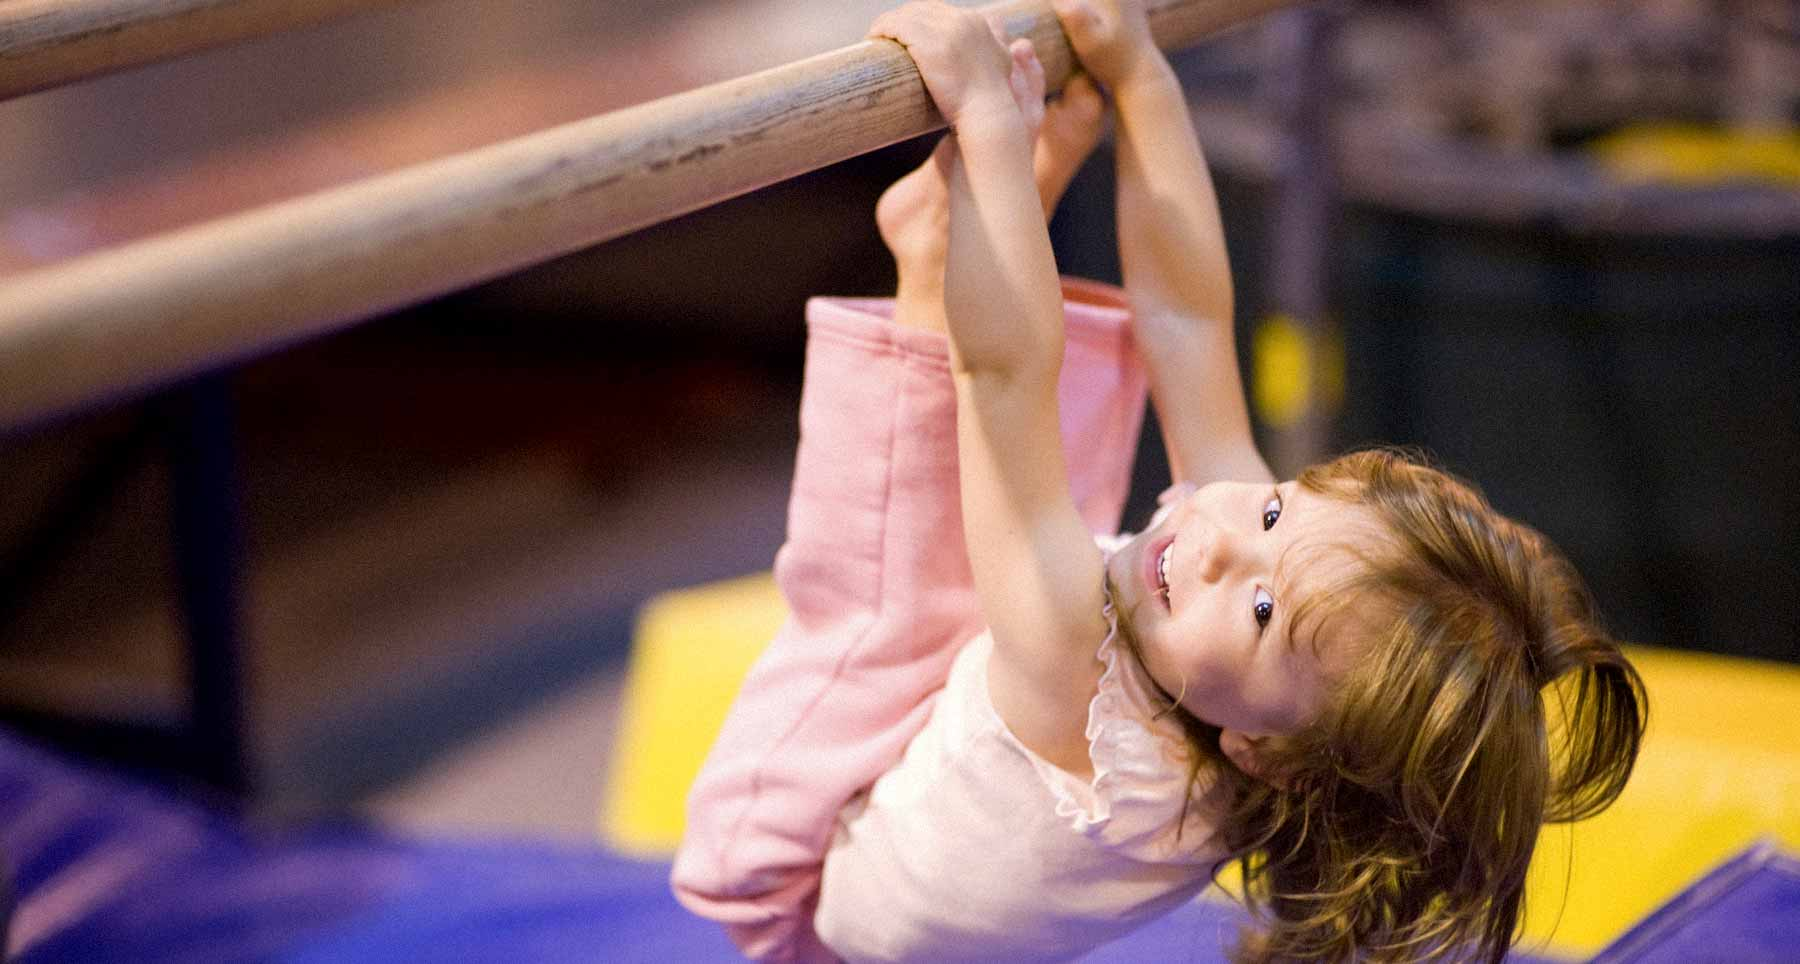 small gymnast on bars